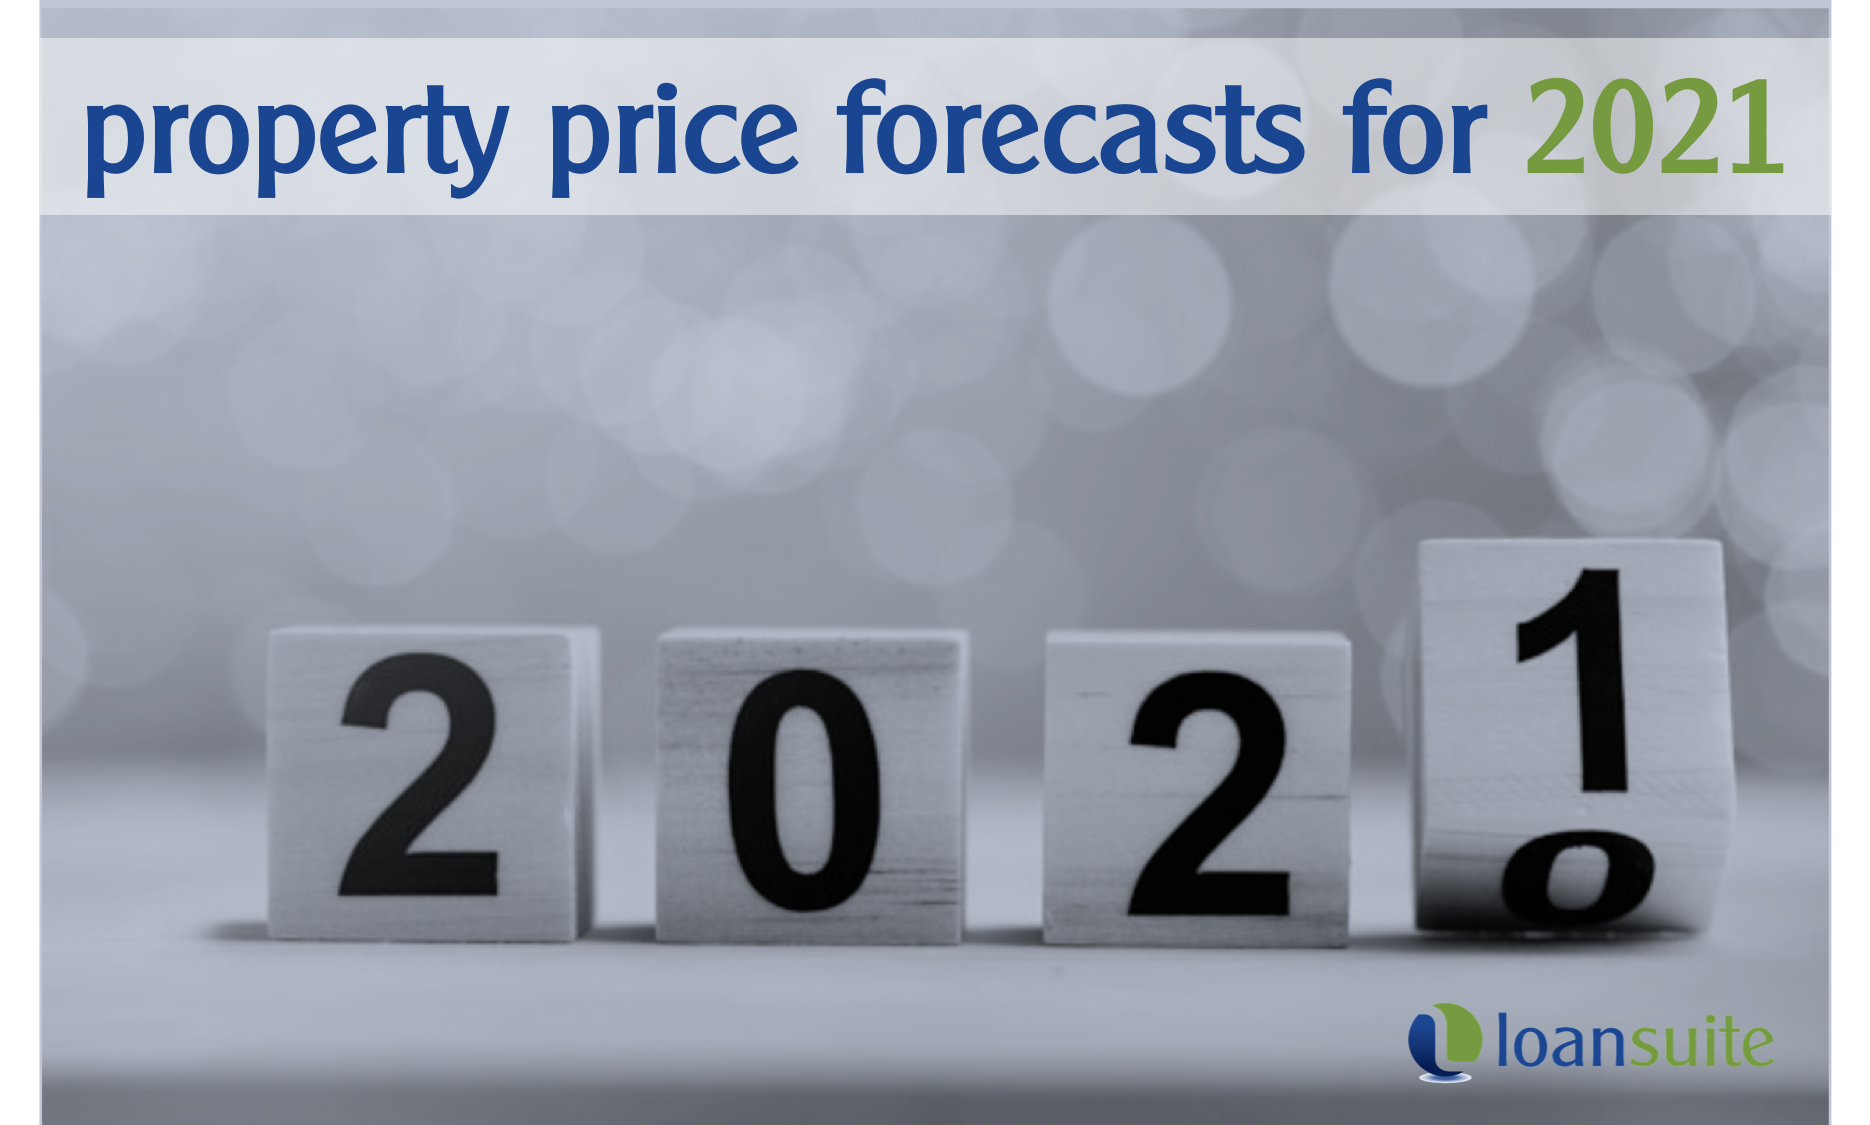 Australian Property Price Forecasts for 2021 - Loansuite